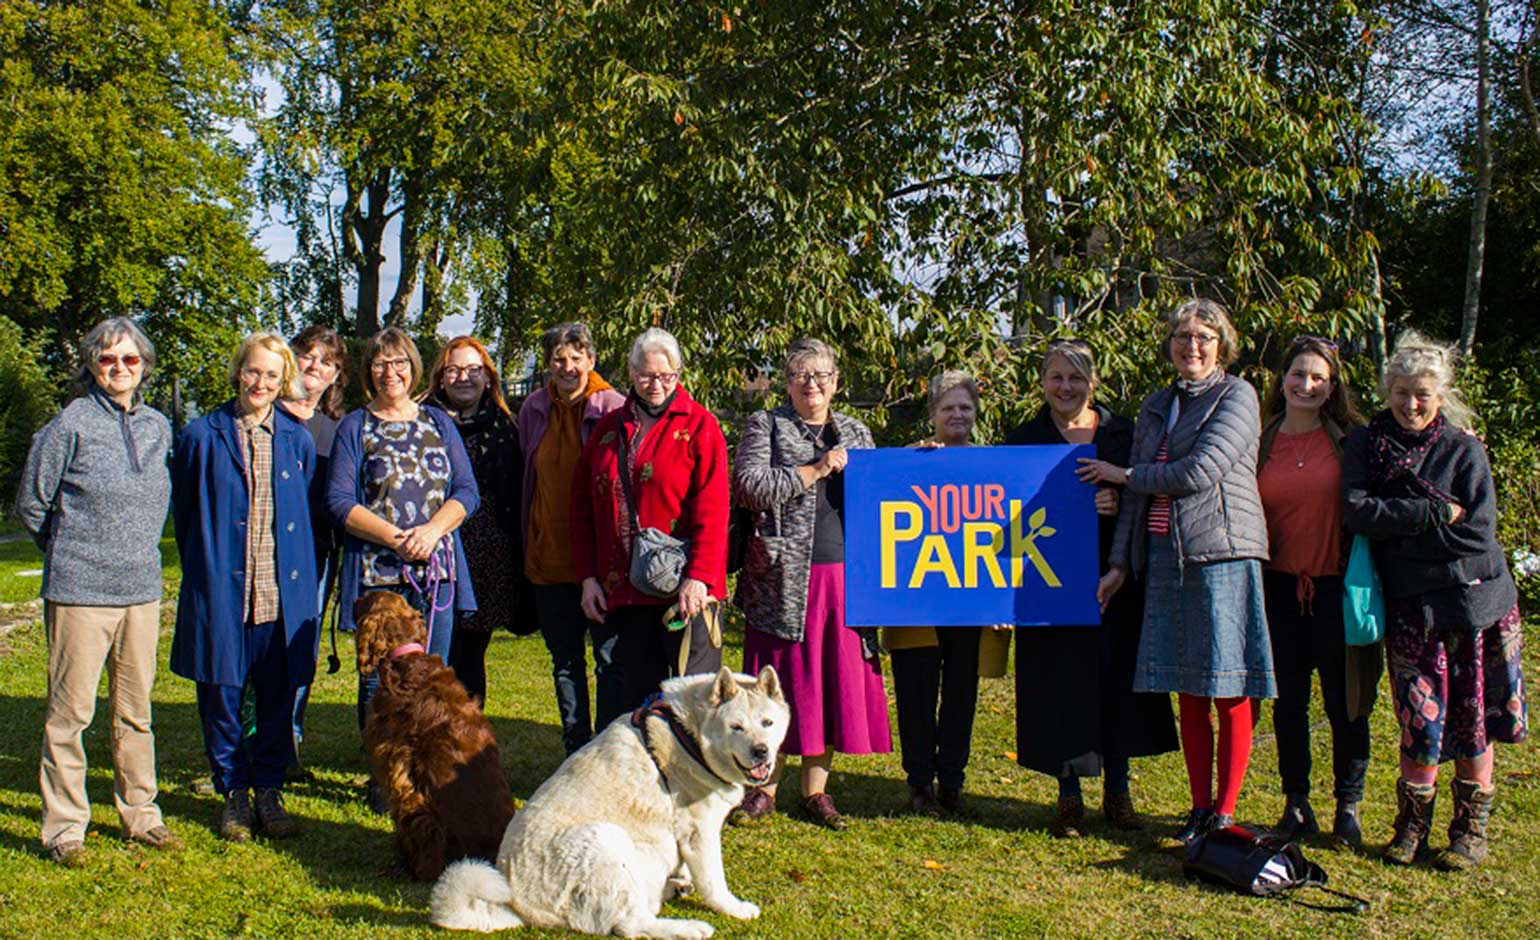 Local projects to receive grants thanks to innovative Love Your Park fund